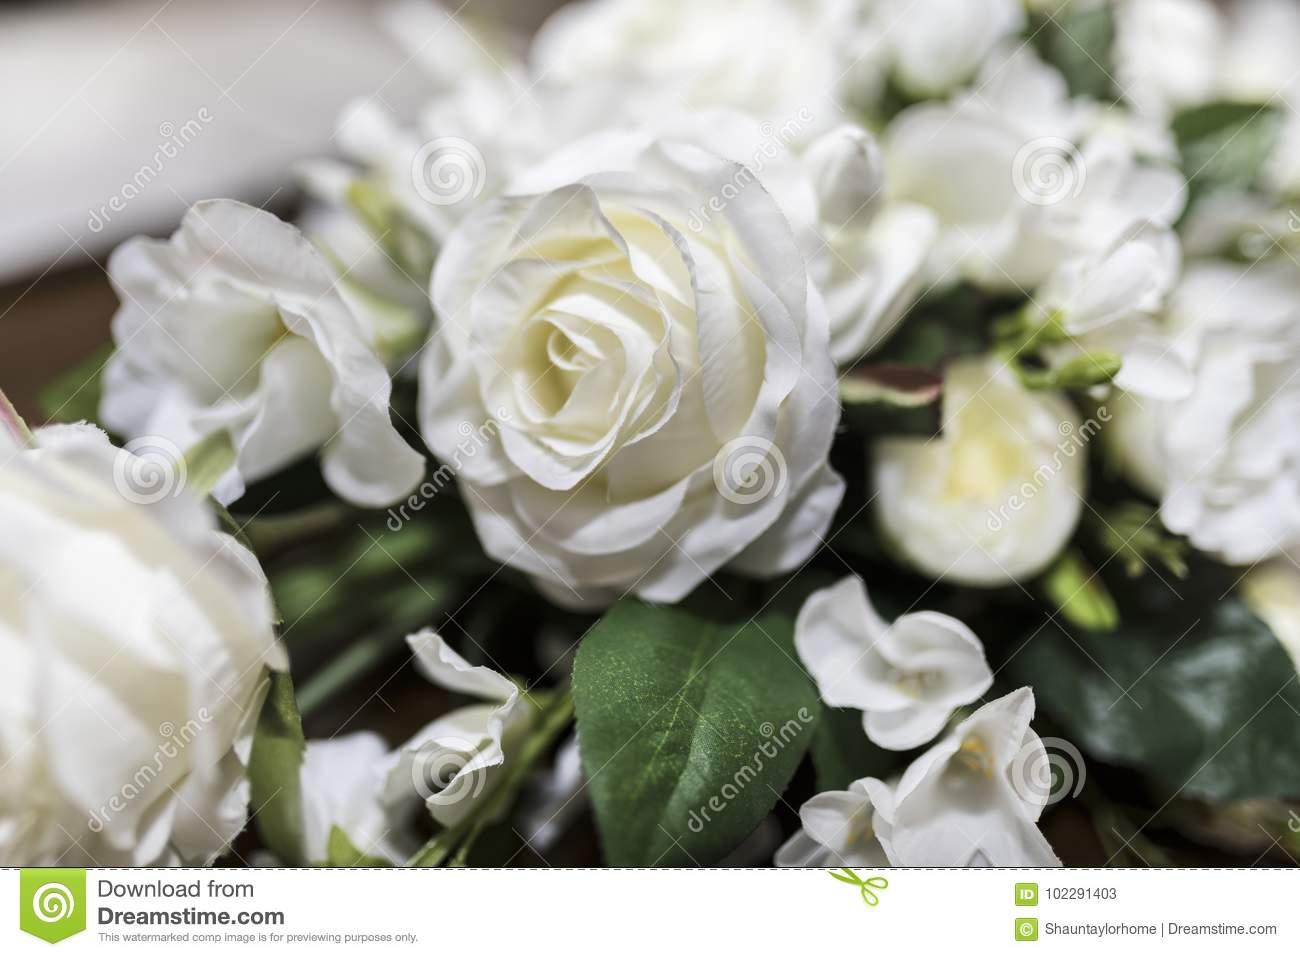 White Roses Wedding Bouquet Of Flowers Shot Close Up With A Shal